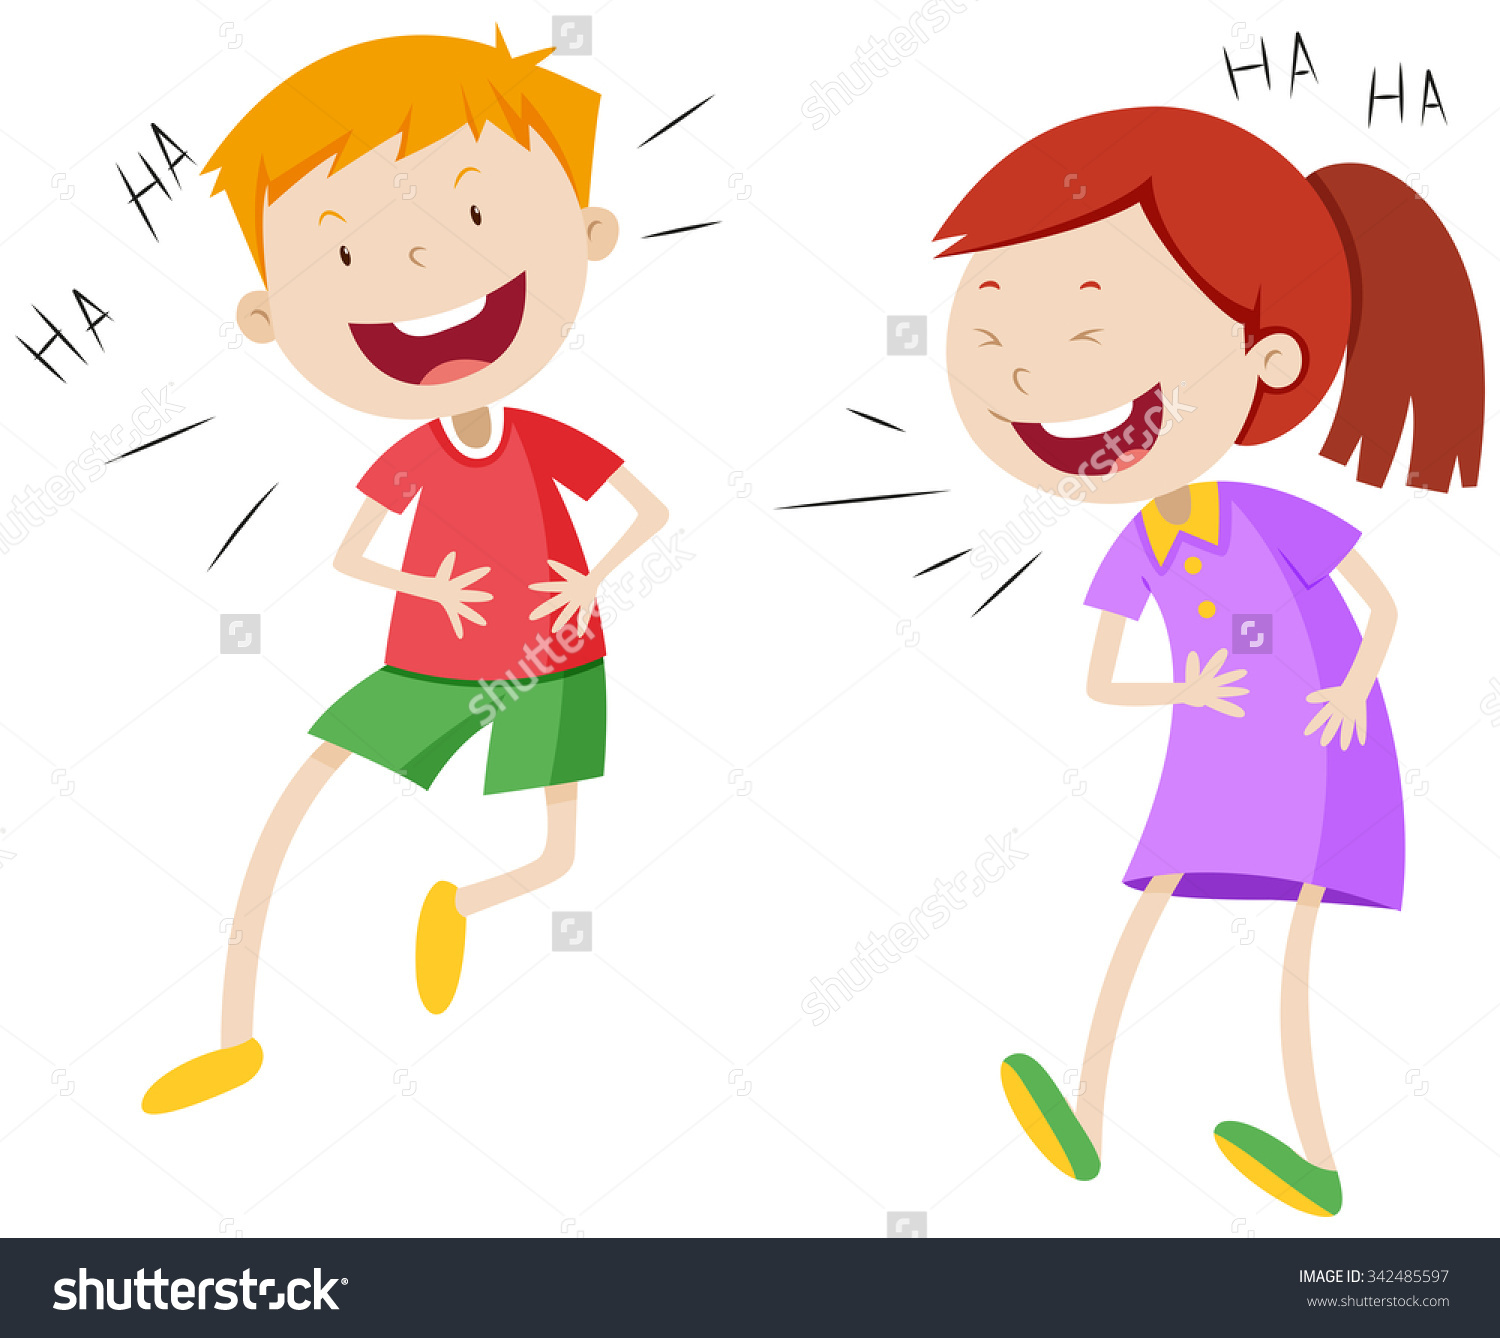 Laughing girl clipart clip freeuse stock Laughing happy girl clipart - ClipartFest clip freeuse stock